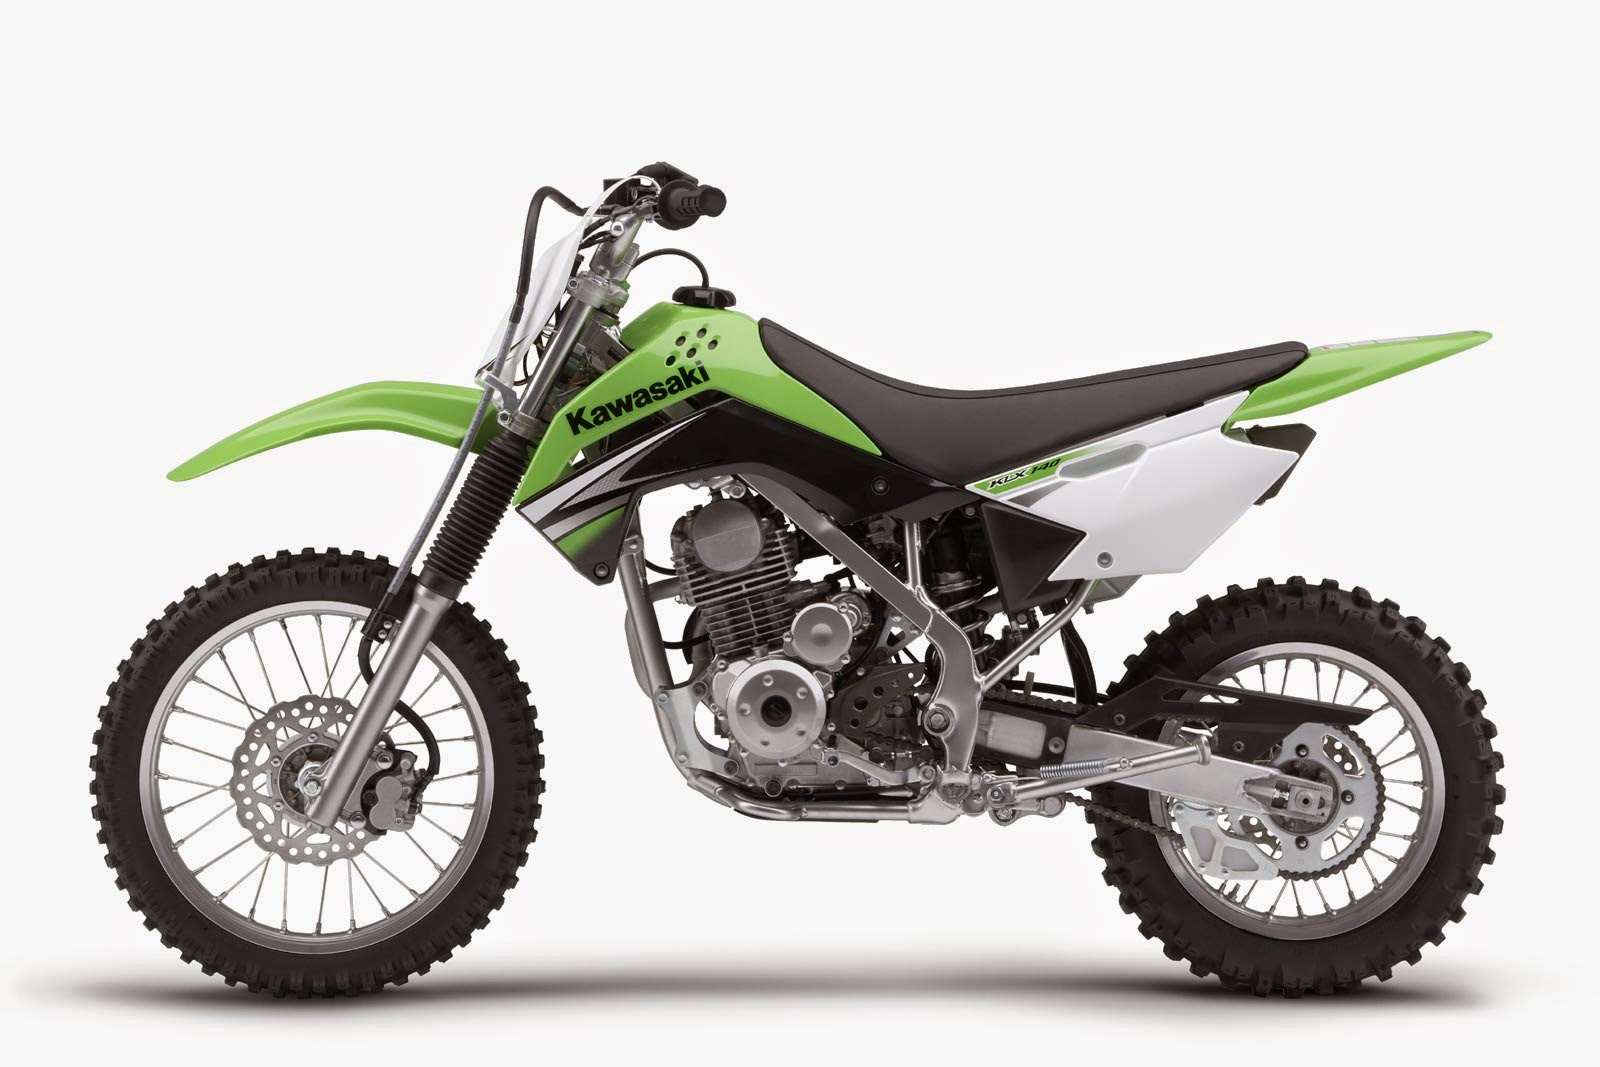 Kawasaki D Tracker 250 Modifikasi